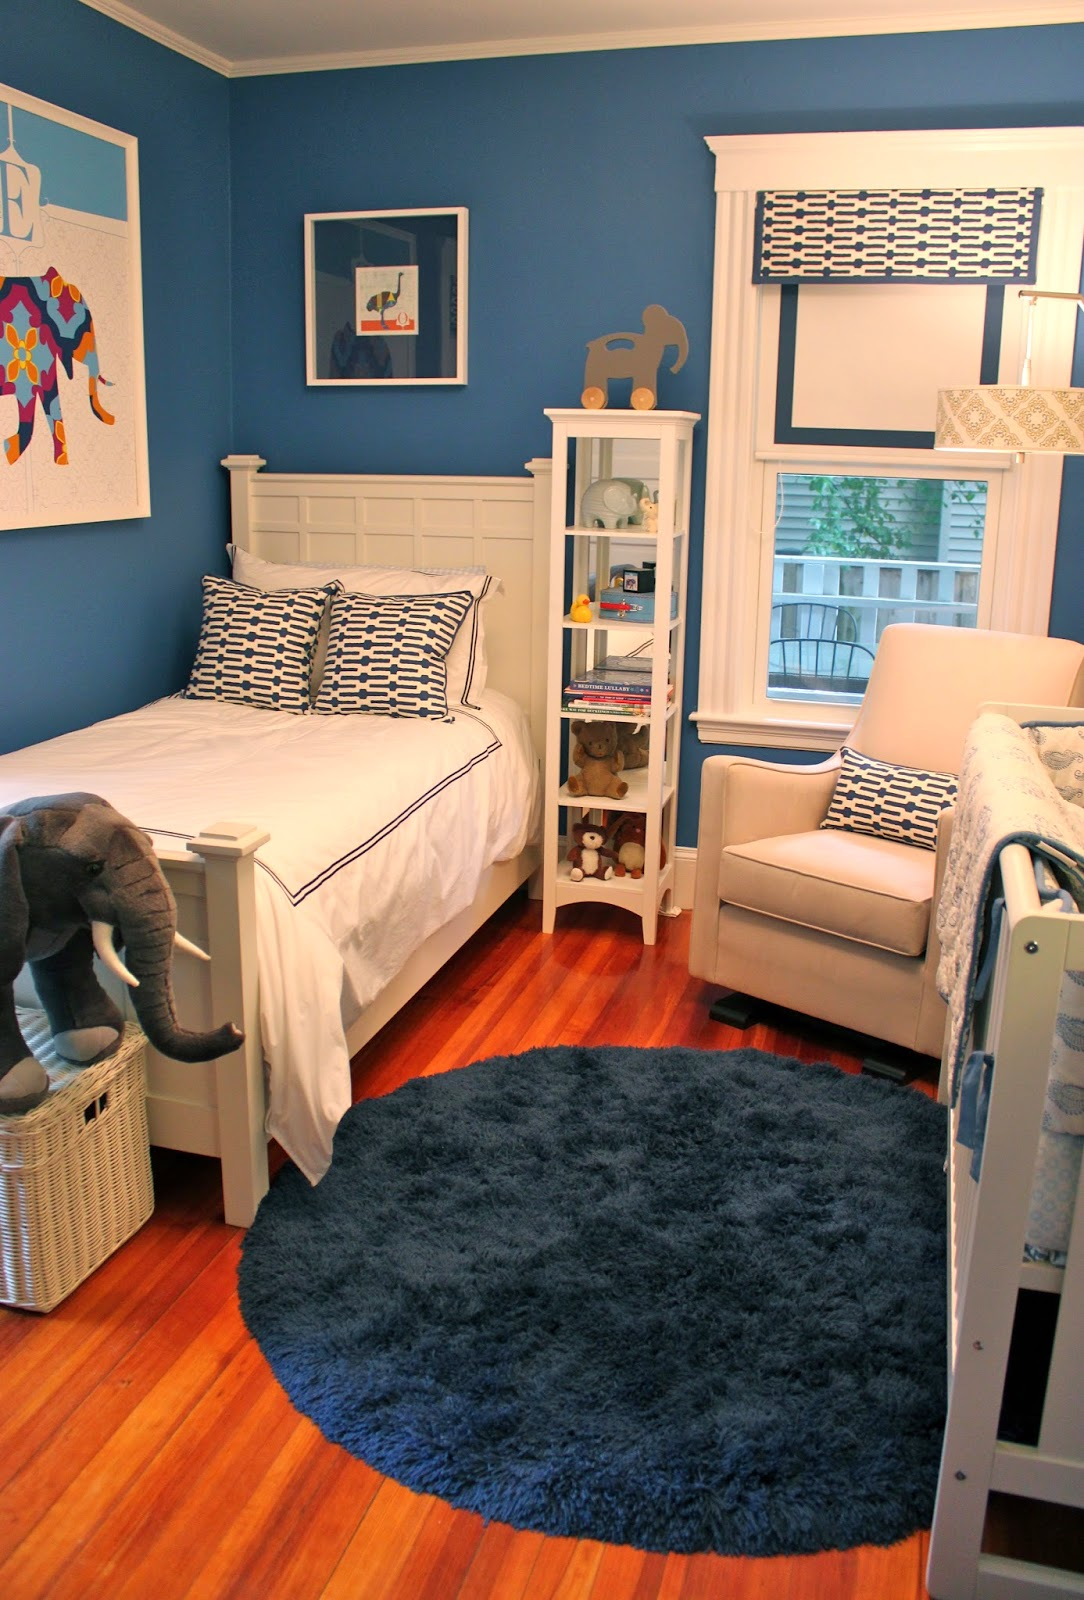 Ideas For Decorating Your Boy's Room | Ideas for home decor